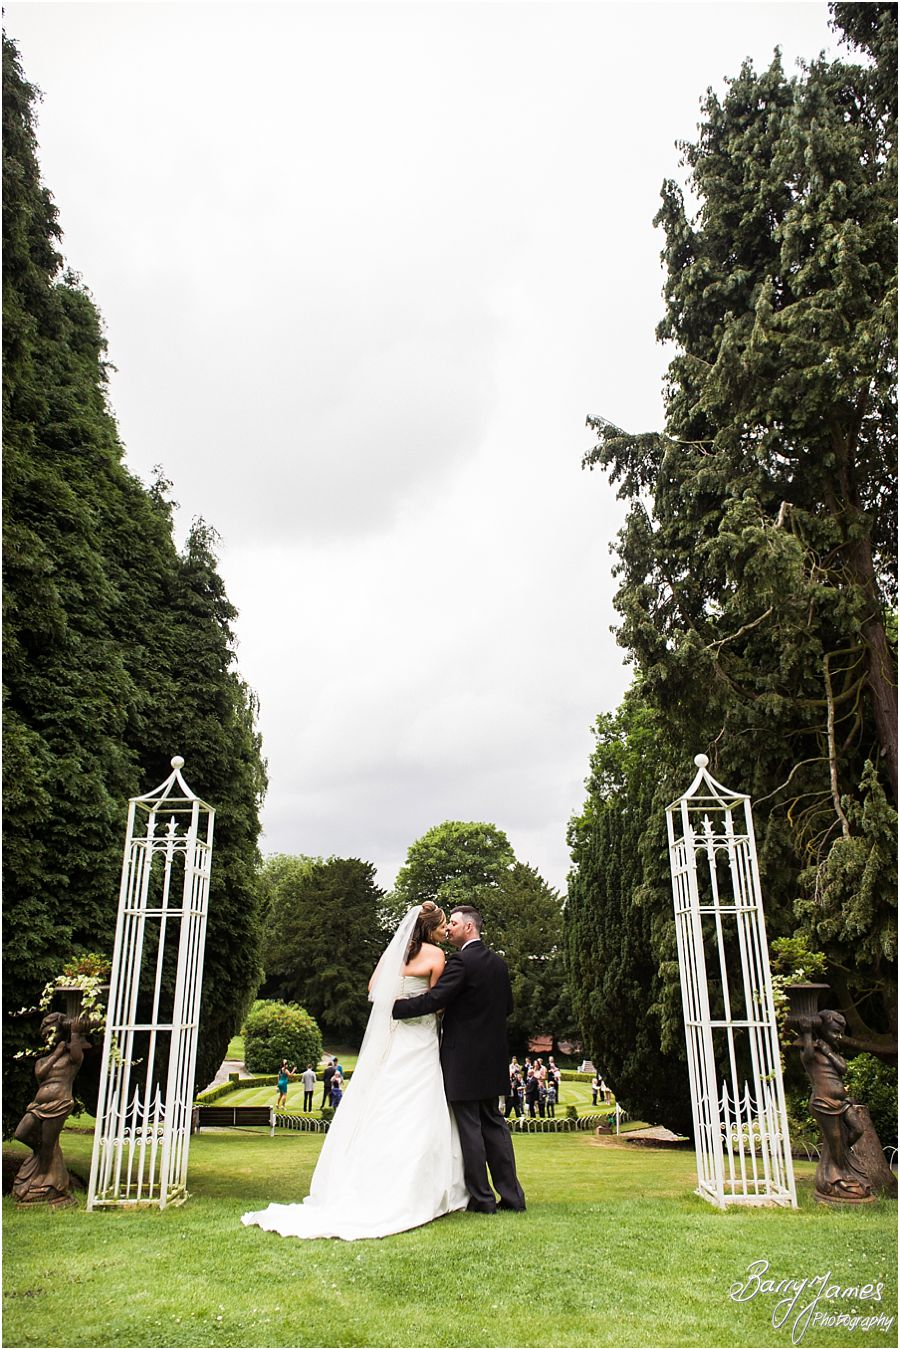 Reportage and contemporary wedding photography at Hawkesyard Estate in Rugeley by Full Time Rugeley Wedding Photographer Barry James